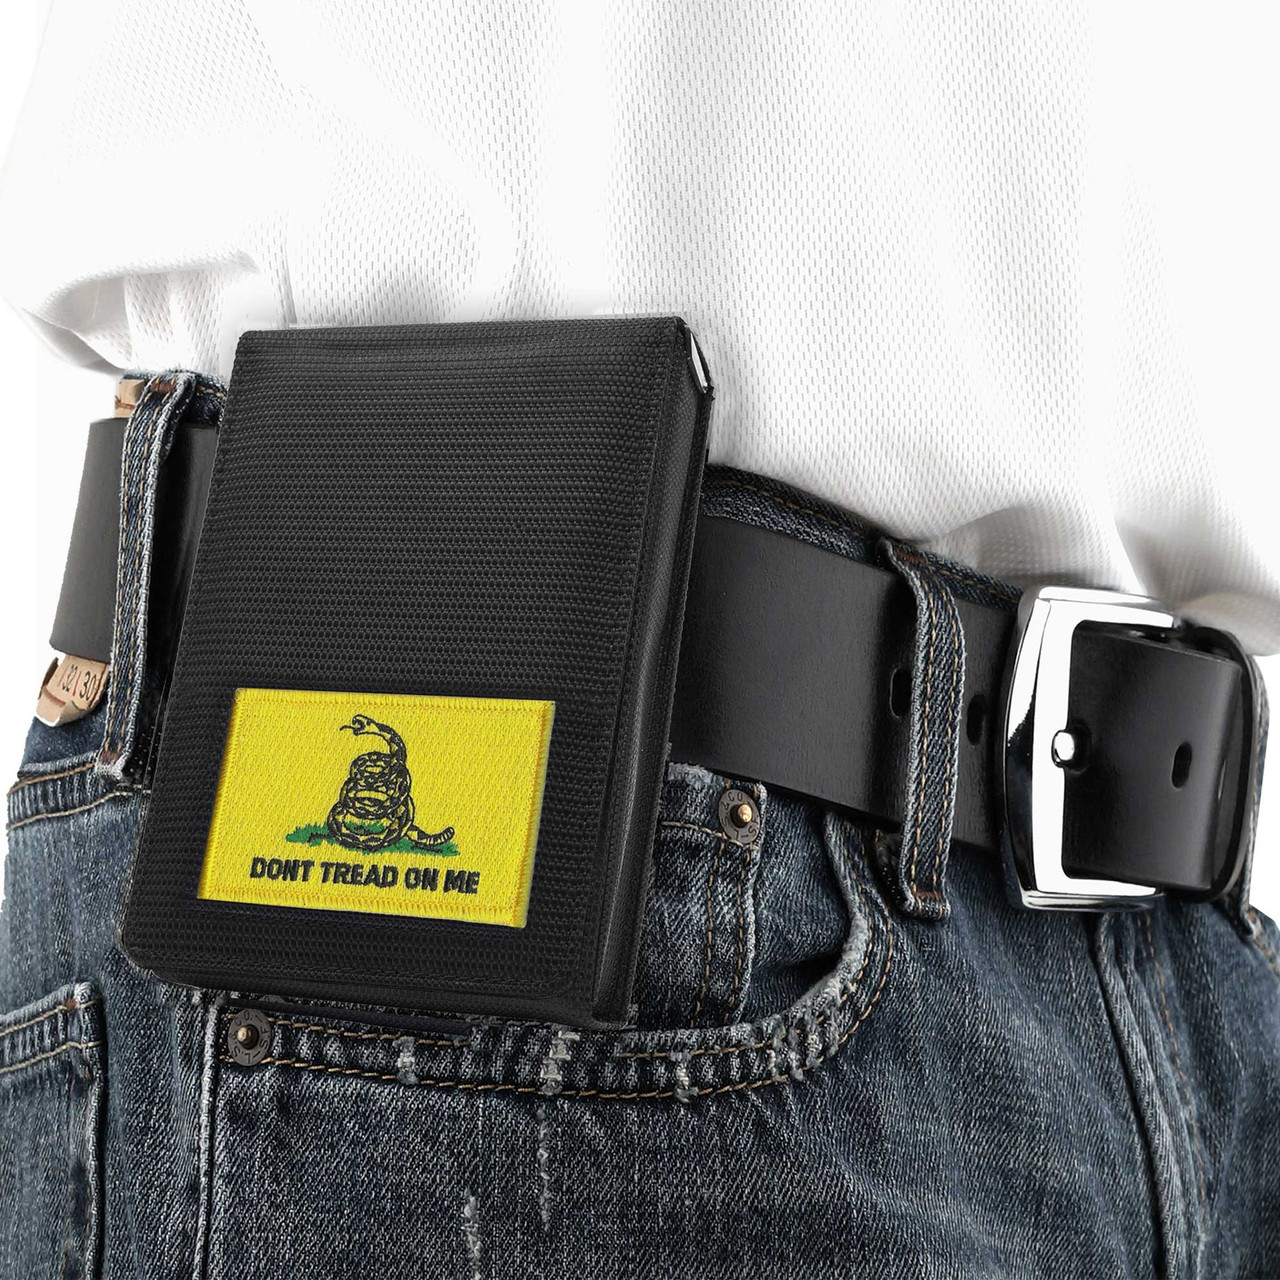 Springfield Ultra Compact Don't Tread on Me Holster